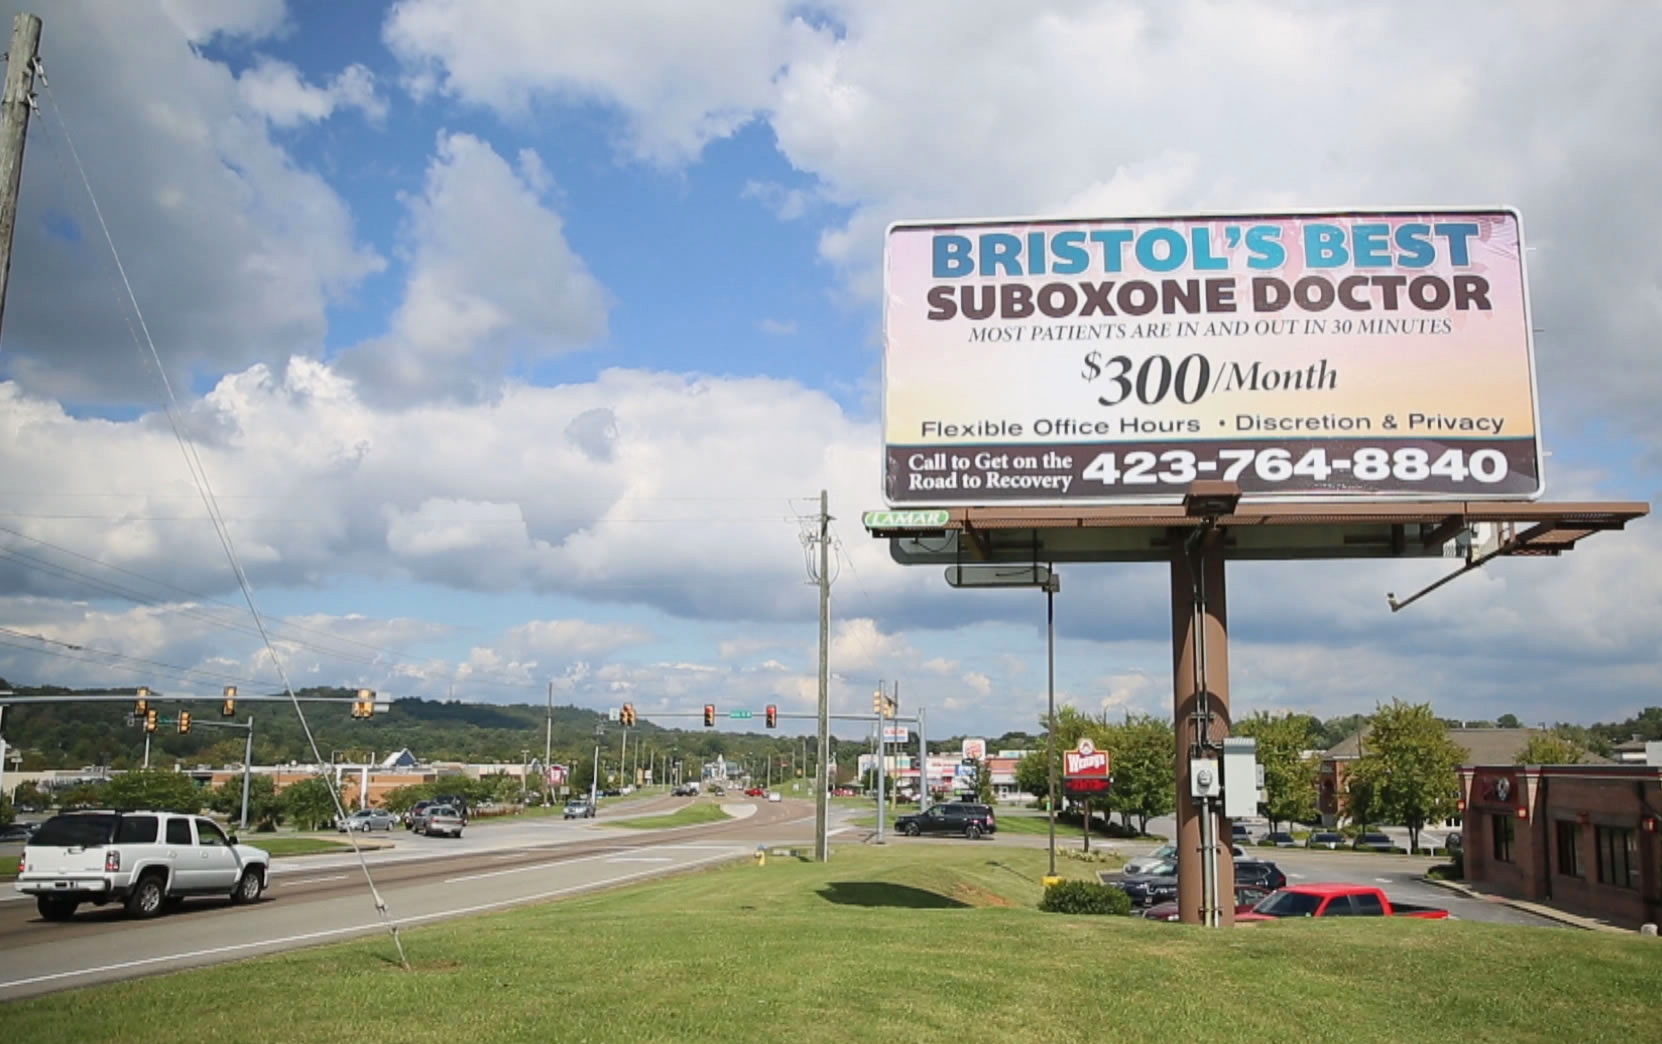 Image: A billboard advertises a clinic that distributes Suboxone